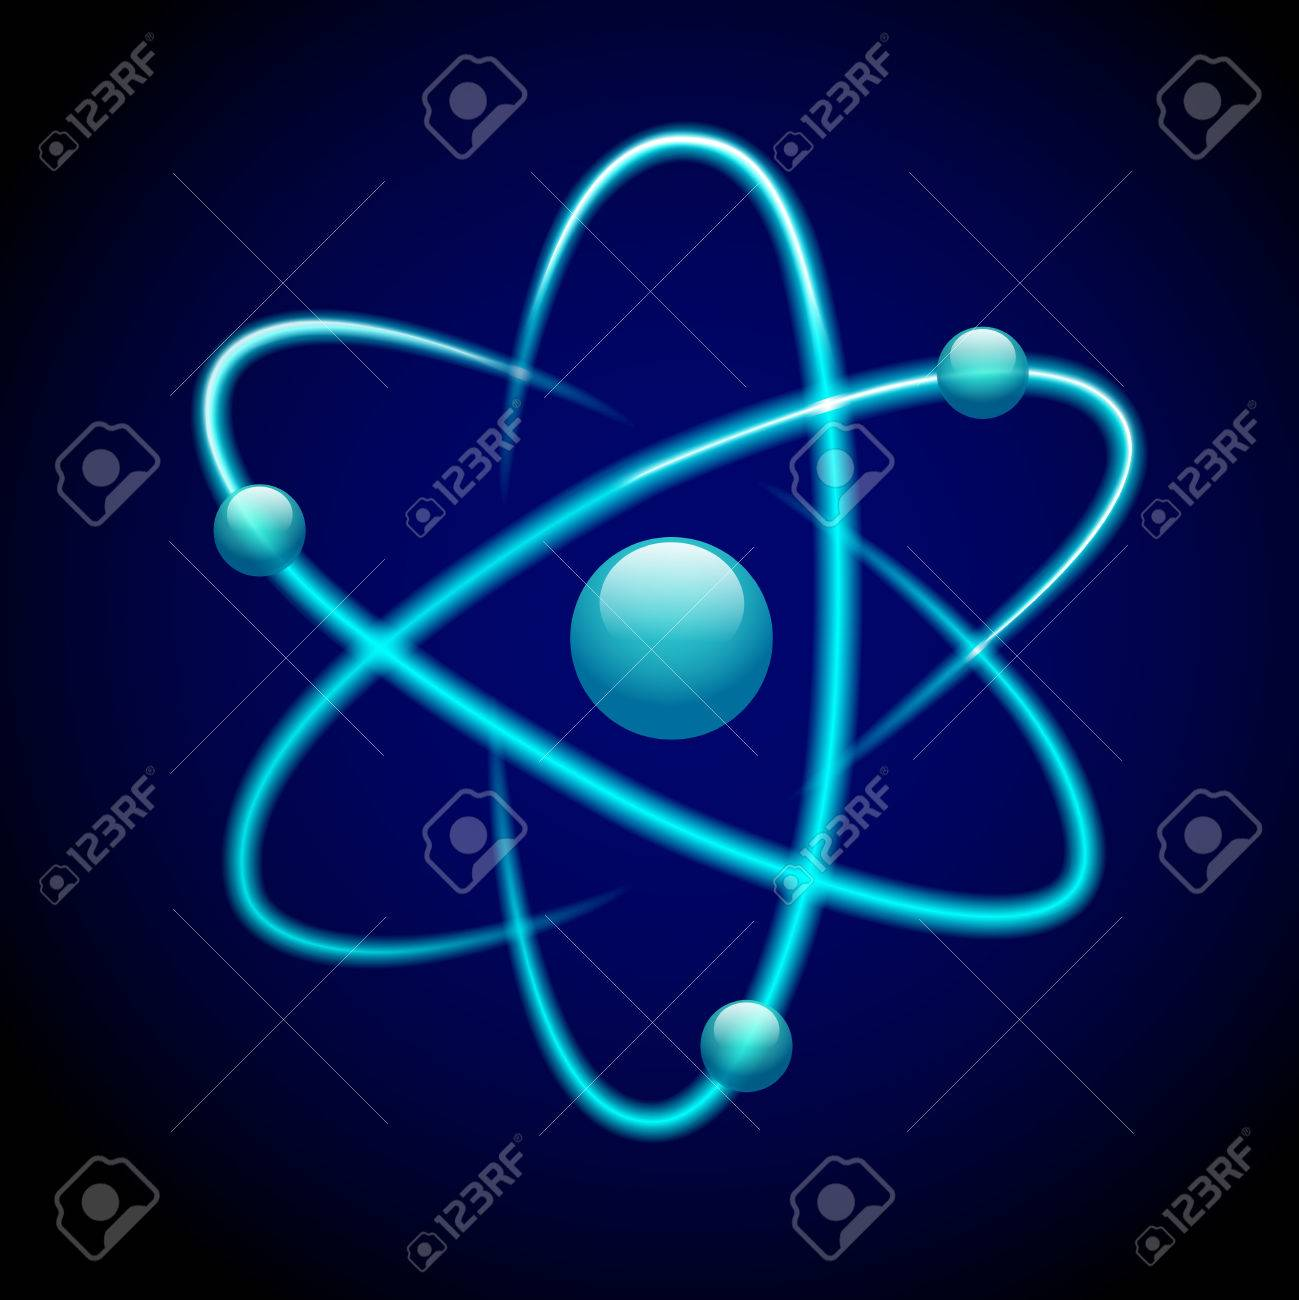 Atom 3d blue abstract nuclear structure science model symbol atom 3d blue abstract nuclear structure science model symbol illustration stock vector 27146022 ccuart Images